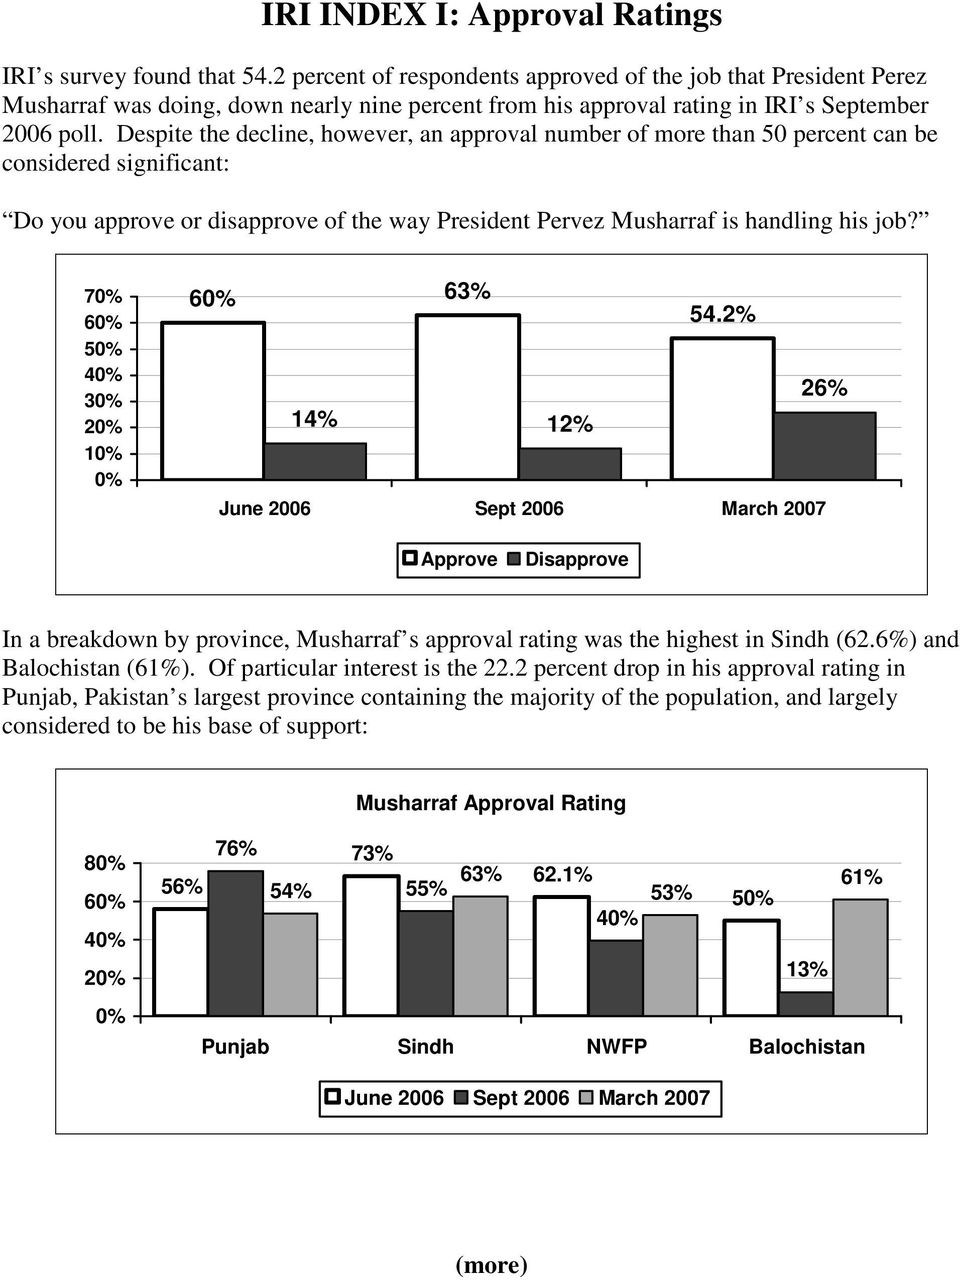 Despite the decline, however, an approval number of more than 50 percent can be considered significant: Do you approve or disapprove of the way President Pervez Musharraf is handling his job?